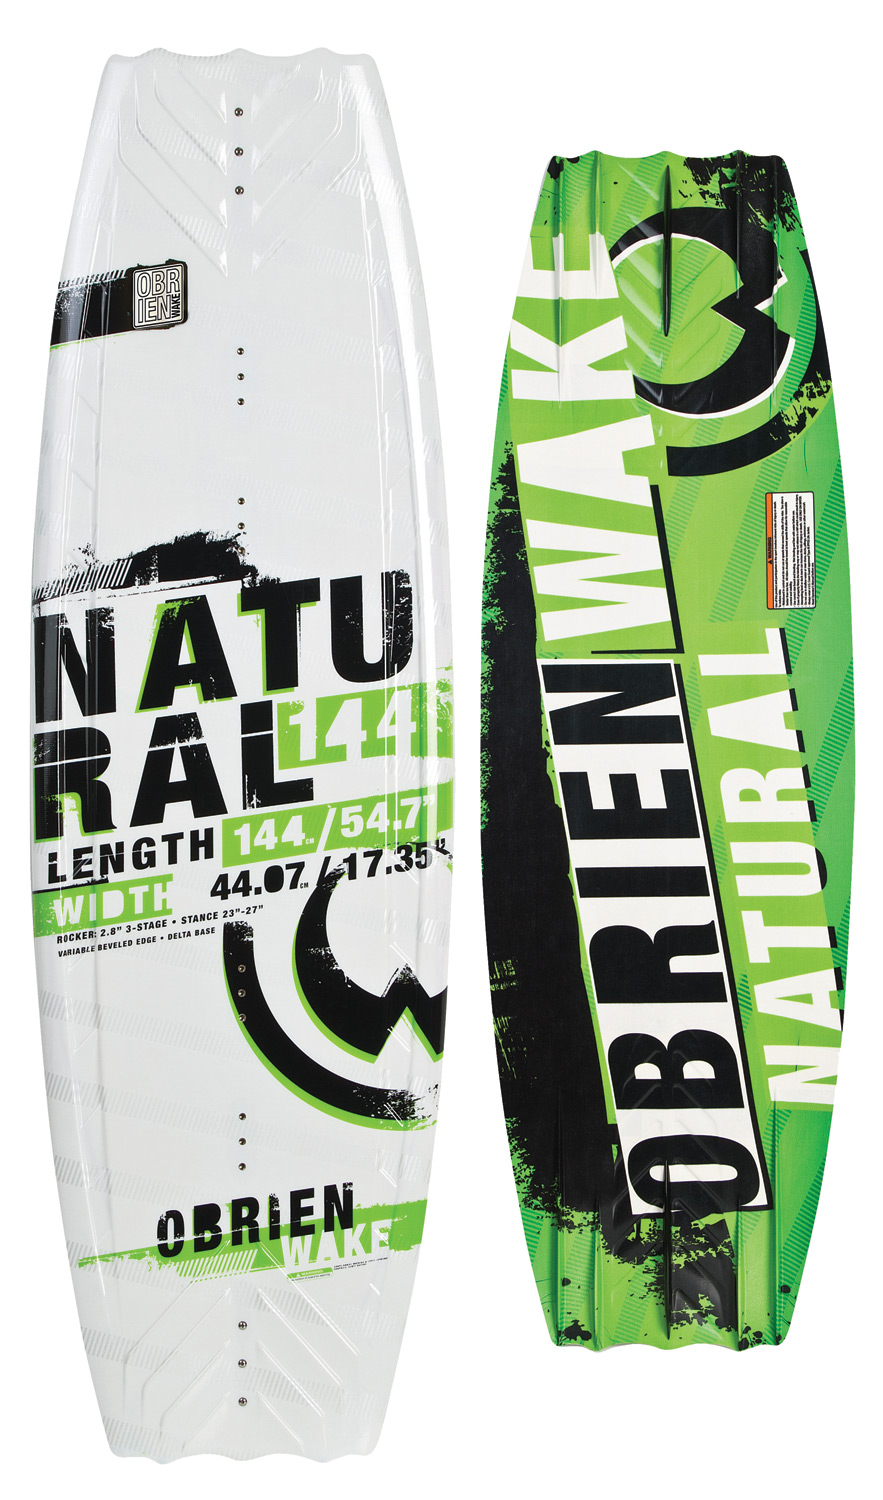 "Wake The board that started O'Brien's DELTA base revolution! The Natural's full profile and wide tips are ideally suited to the rider who prefers a slightly tail-heavy approach to the wake. The blended 3-stage rocker kicks the tail into the wake, generating more vertical pop. The variable beveled edge and quad molded fins provide secure edging, even when you are not using the optional center fin. One ride is all it takes.  Wakeboard Binding CompatibilityCan accommodate bindings with a 6in binding plate  a href=""http://search.the-house.com/ keywords=6inch_wakebind_plate_merch_grouping"" found here /a .  Can only accommodate a single mounting position option for Liquid Force bindings with a 8in binding plate and offers two positions for all other vendors  a href=""http://search.the-house.com/ keywords=8inch_wakebind_plate_merch_grouping"" found here /a . - $259.95"